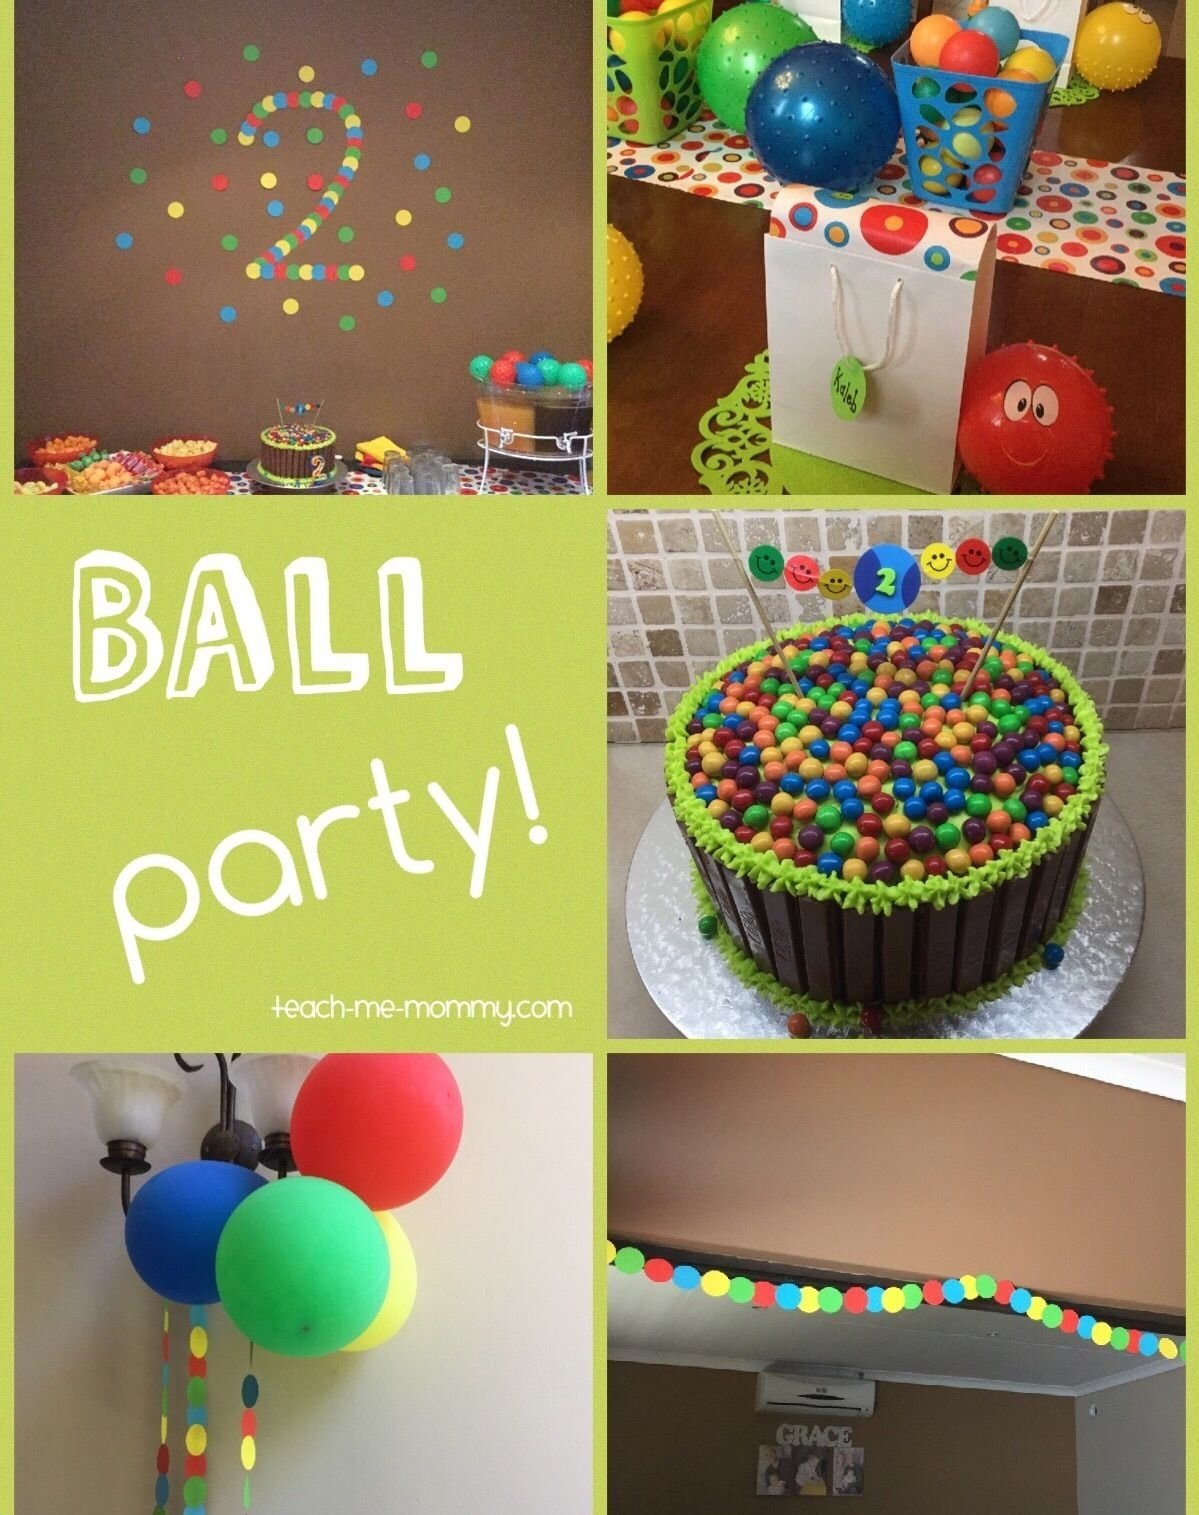 10 Lovable Party Ideas For A 2 Year Old ball themed party for a 2 year old themed parties birthdays and 24 2020